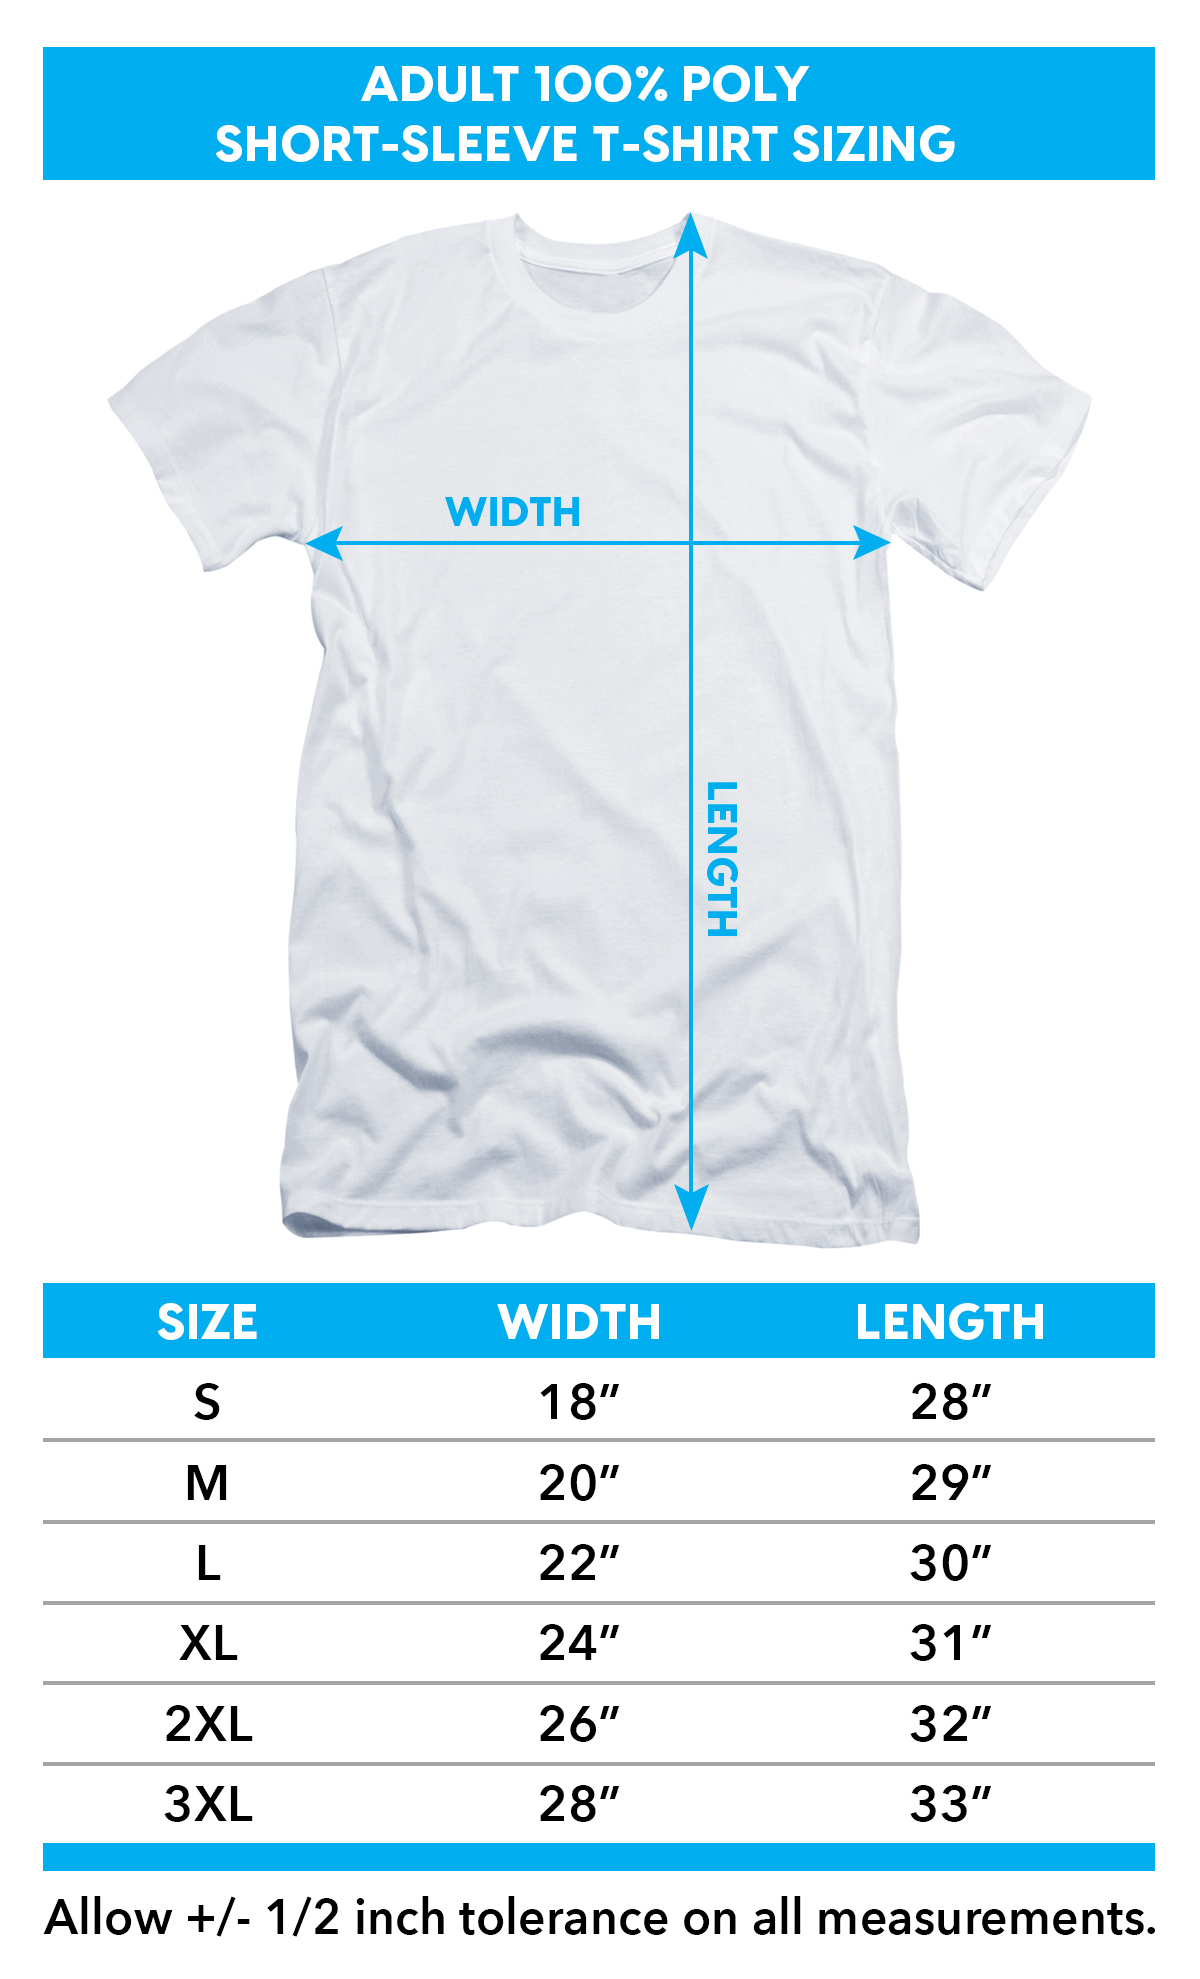 Sizing chart for Aliens T-Shirt - Sublimated Cartoon Ready or Not